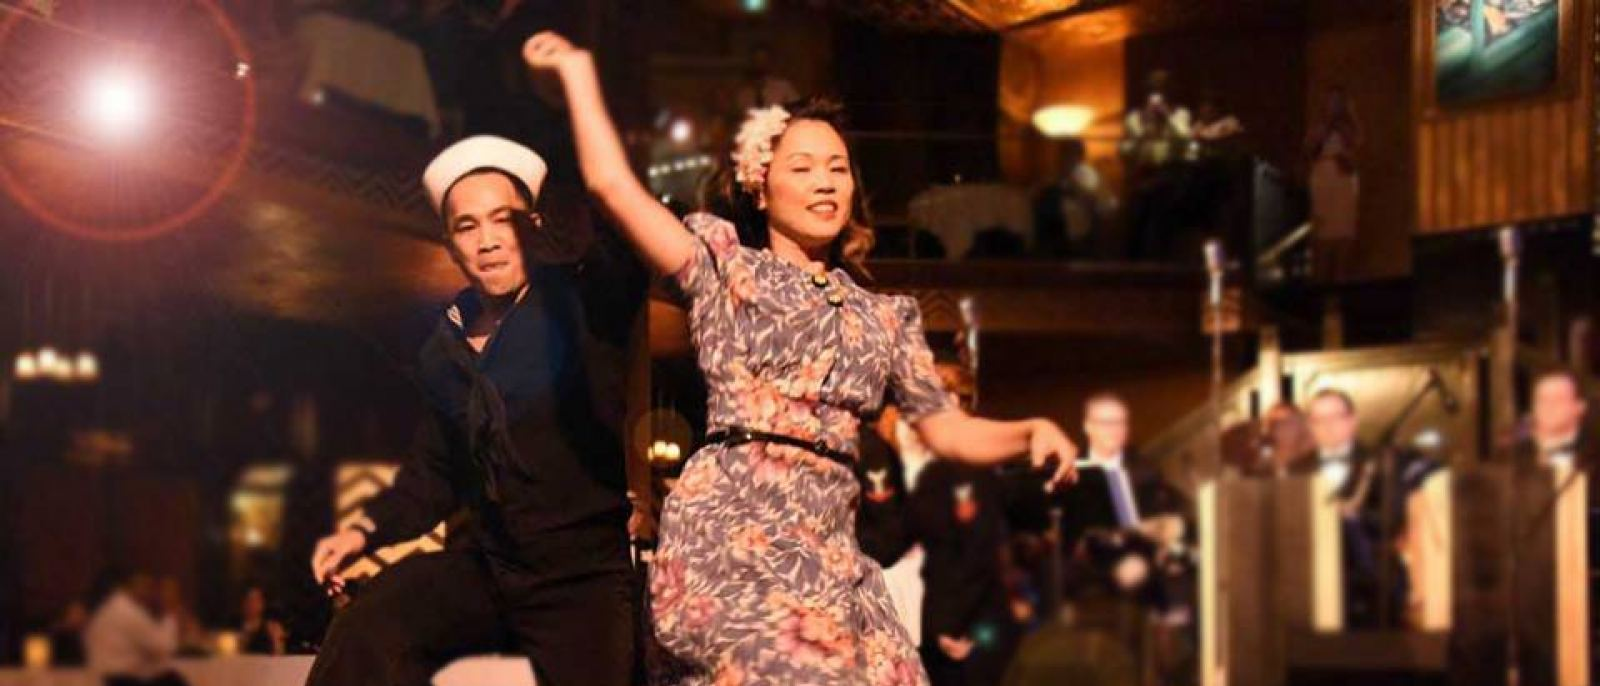 Swing dancers at Cicada Club in Downtown LA